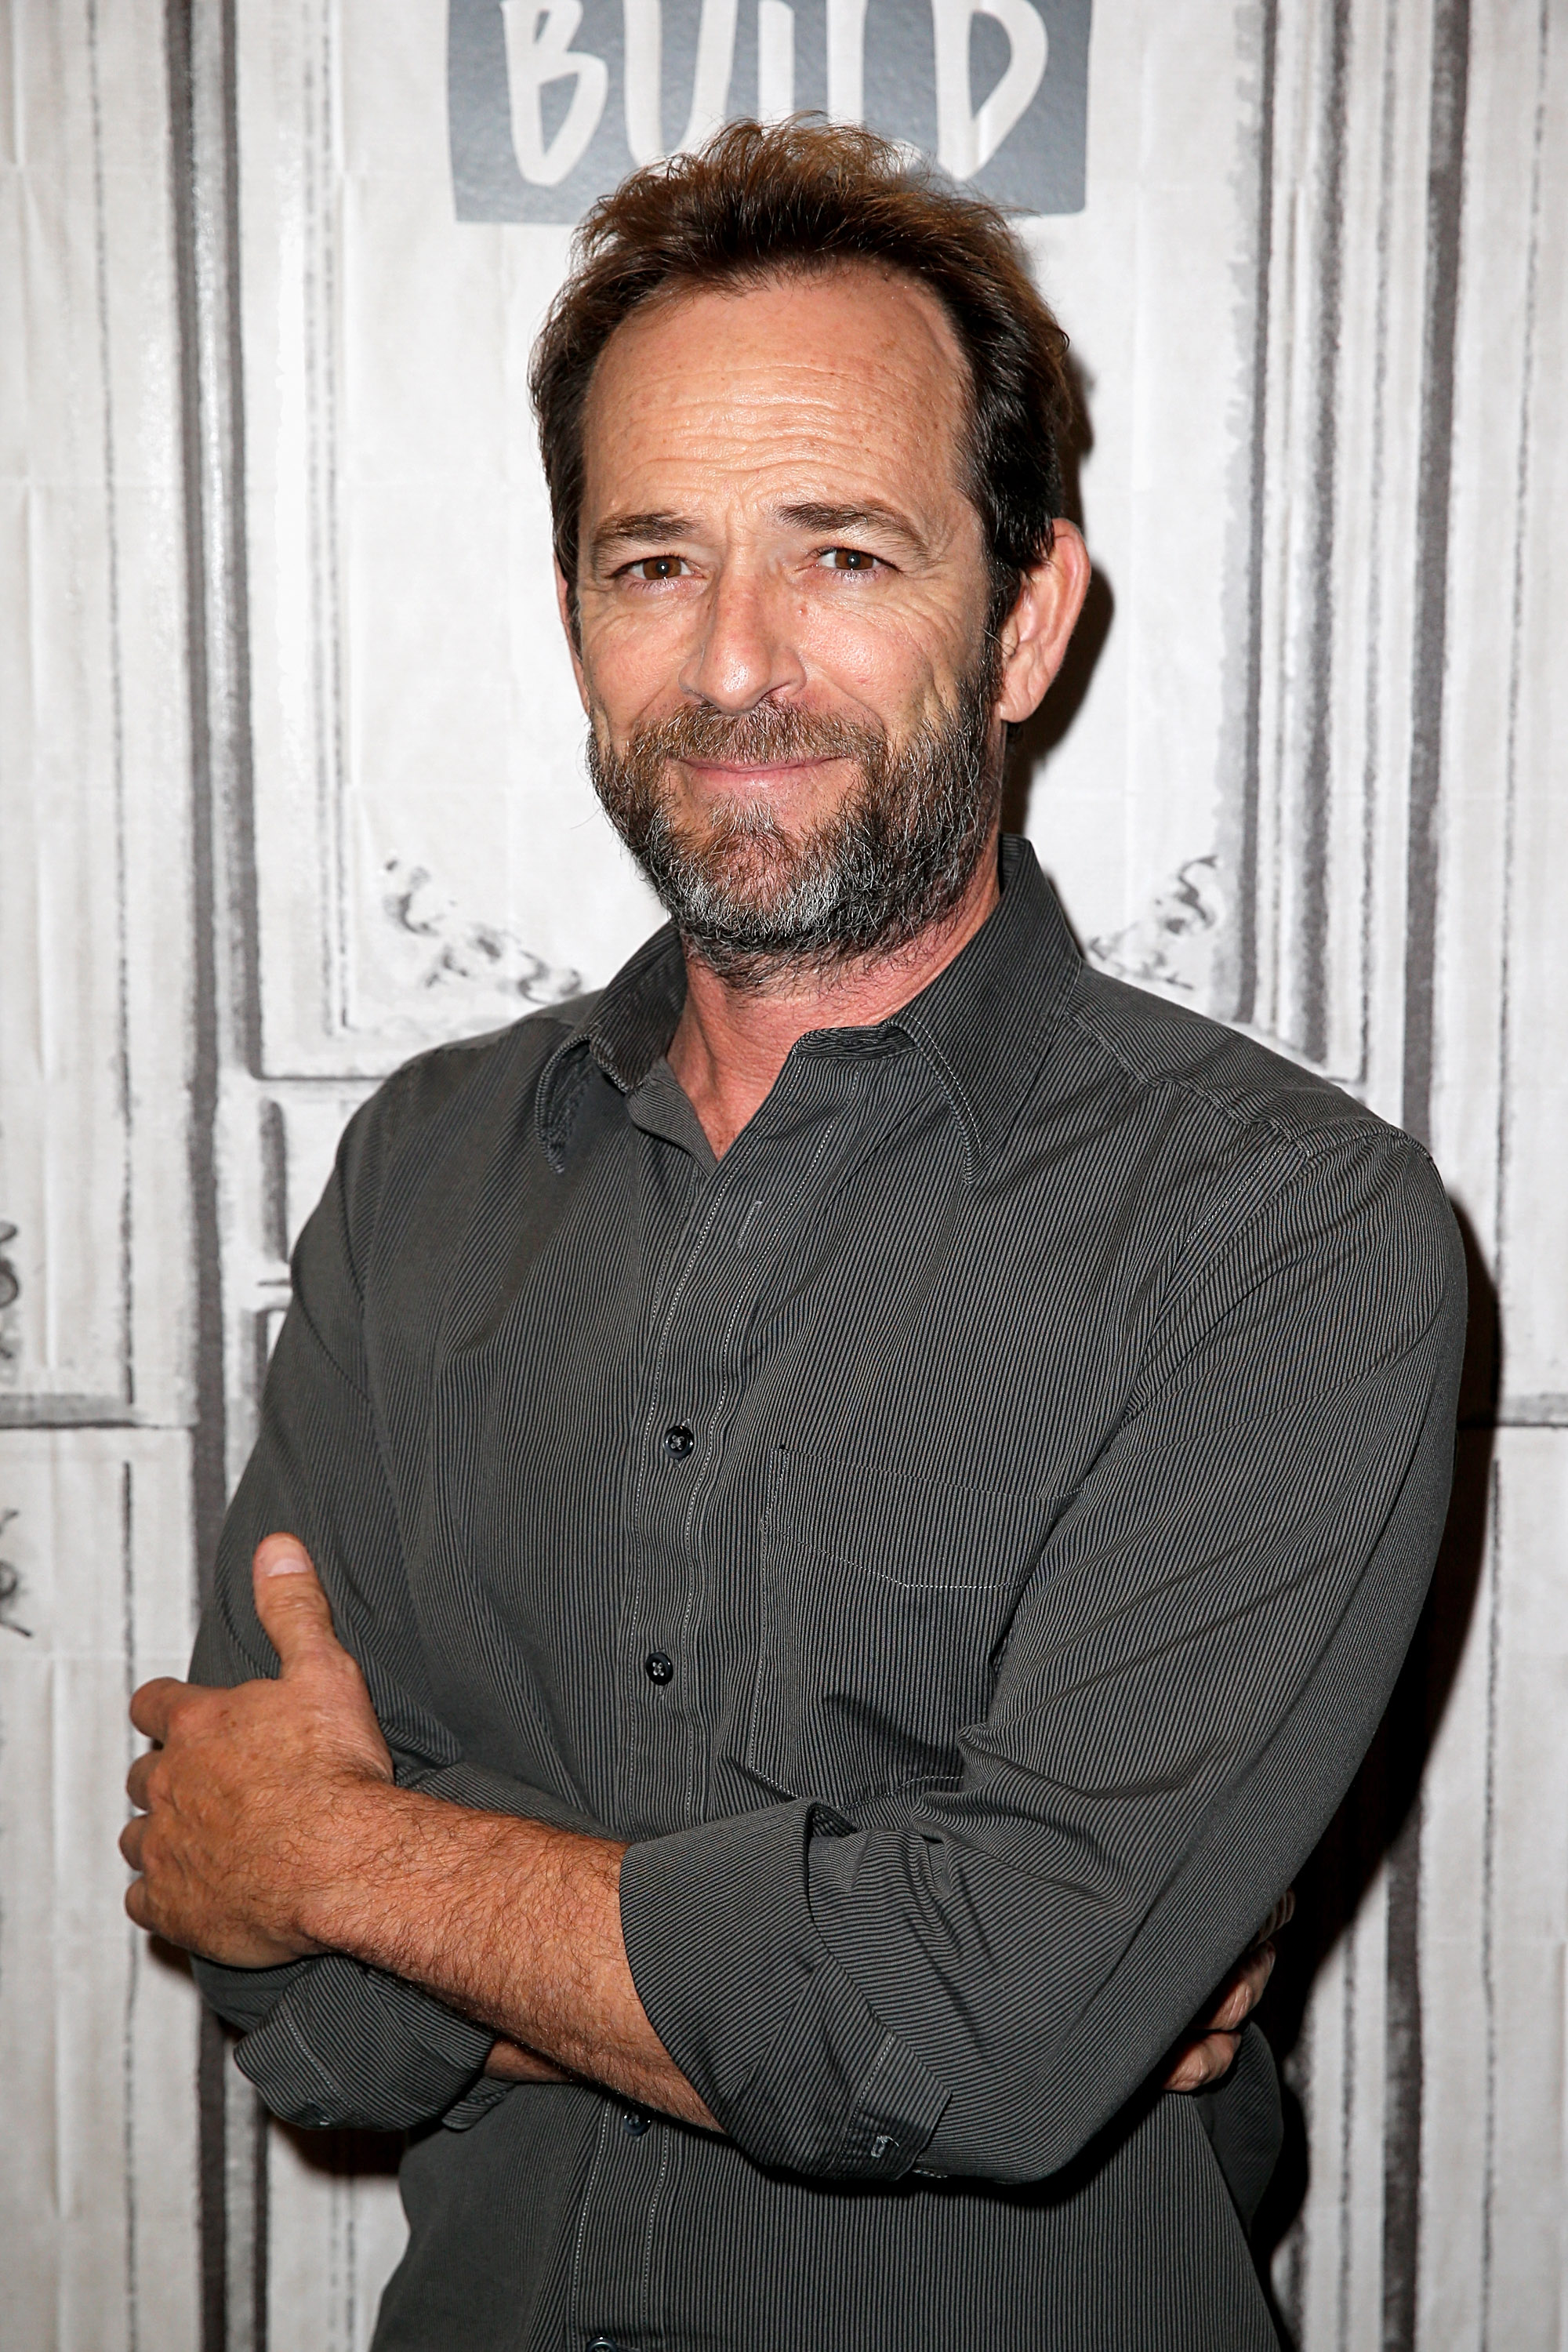 Luke Perry Hospitalized After Suffering Reported Stroke